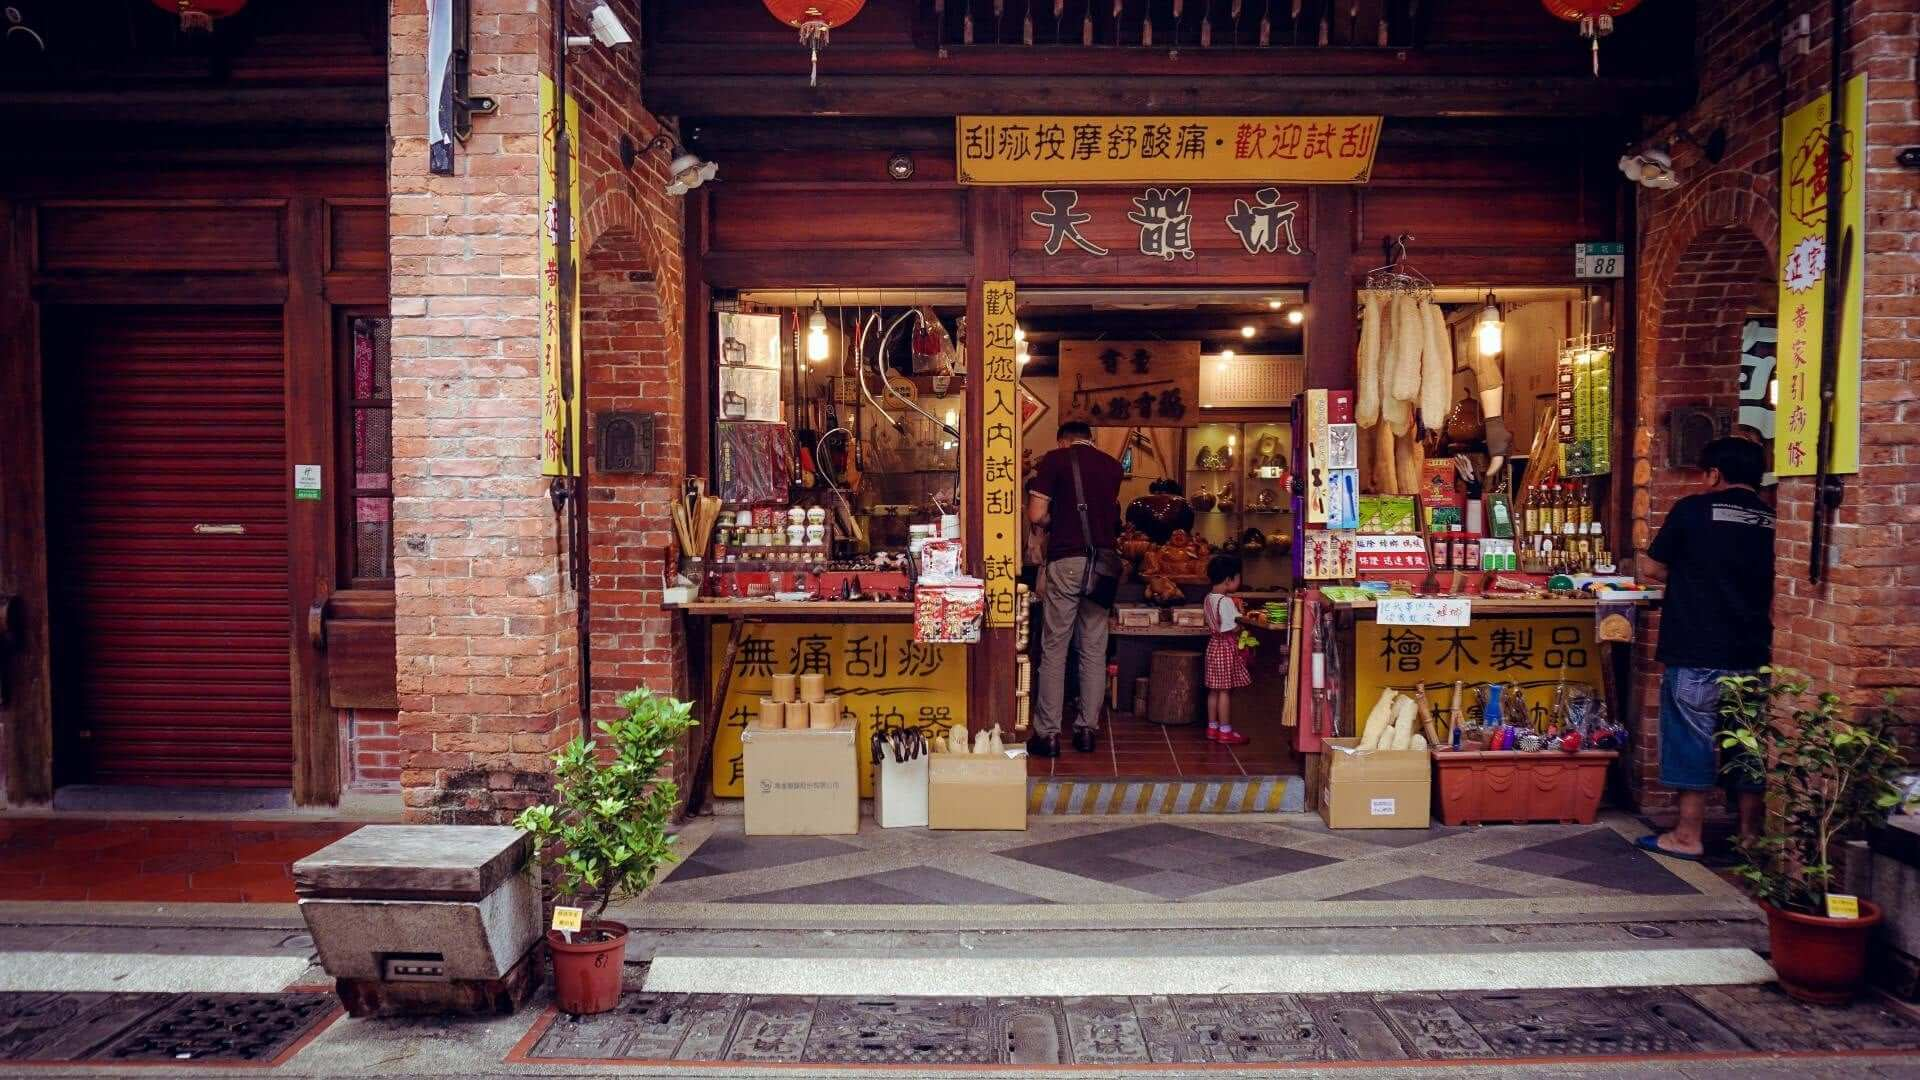 Local Chinese store with fruits and other essentials.